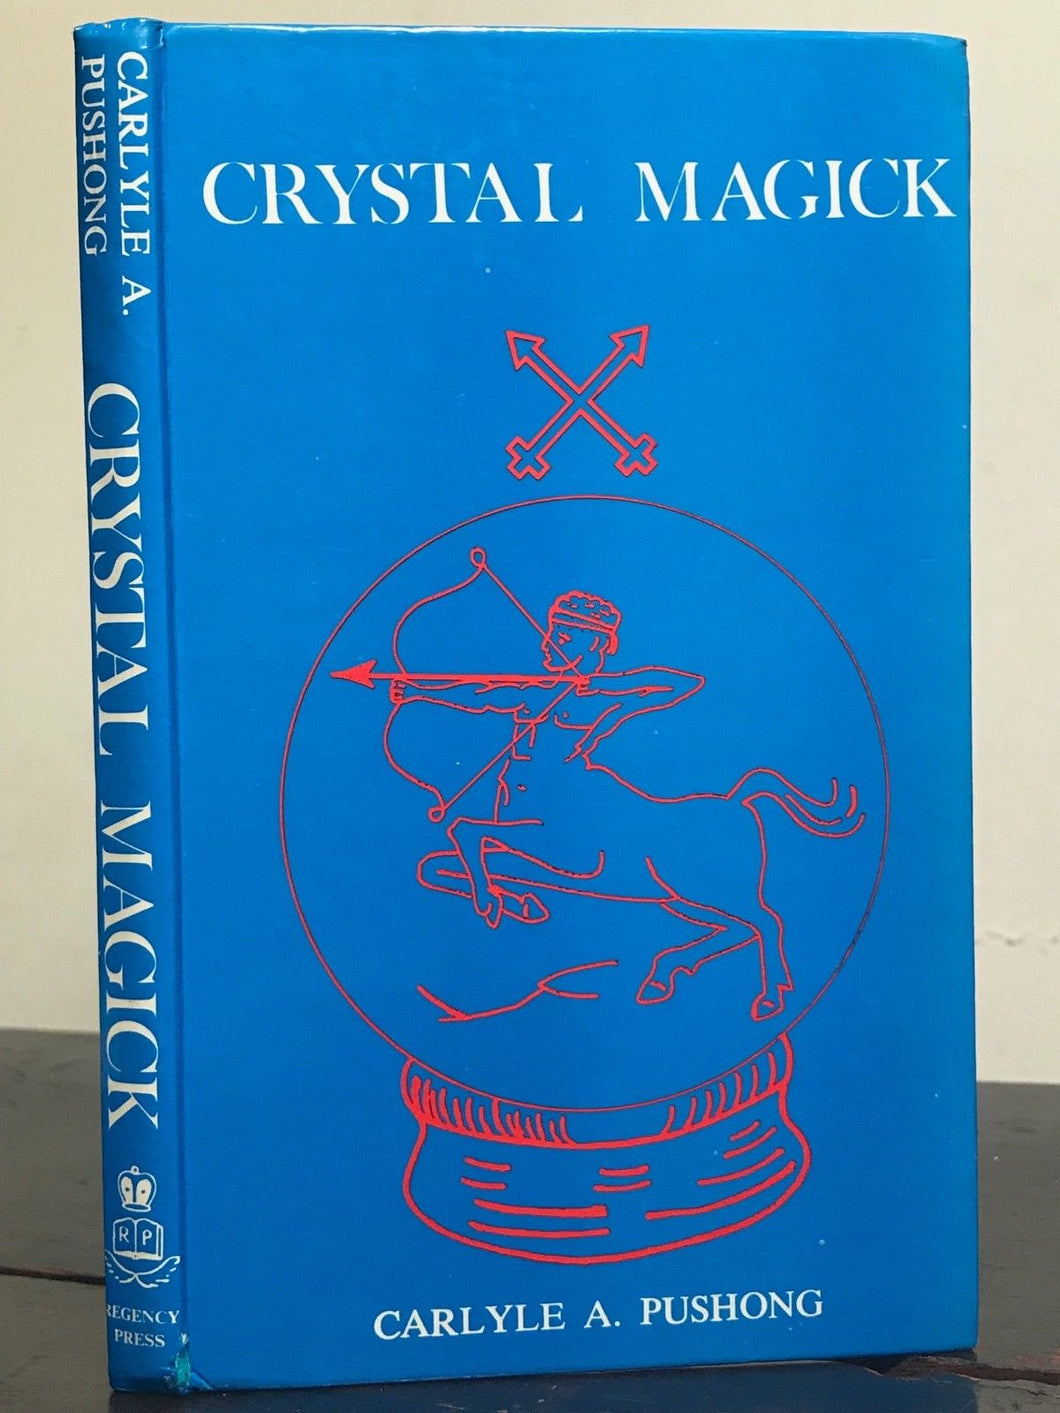 CRYSTAL MAGICK - CARLYLE PUSHONG - 1st/1st 1968 - CRYSTAL HEALING SCRYING MAGIC